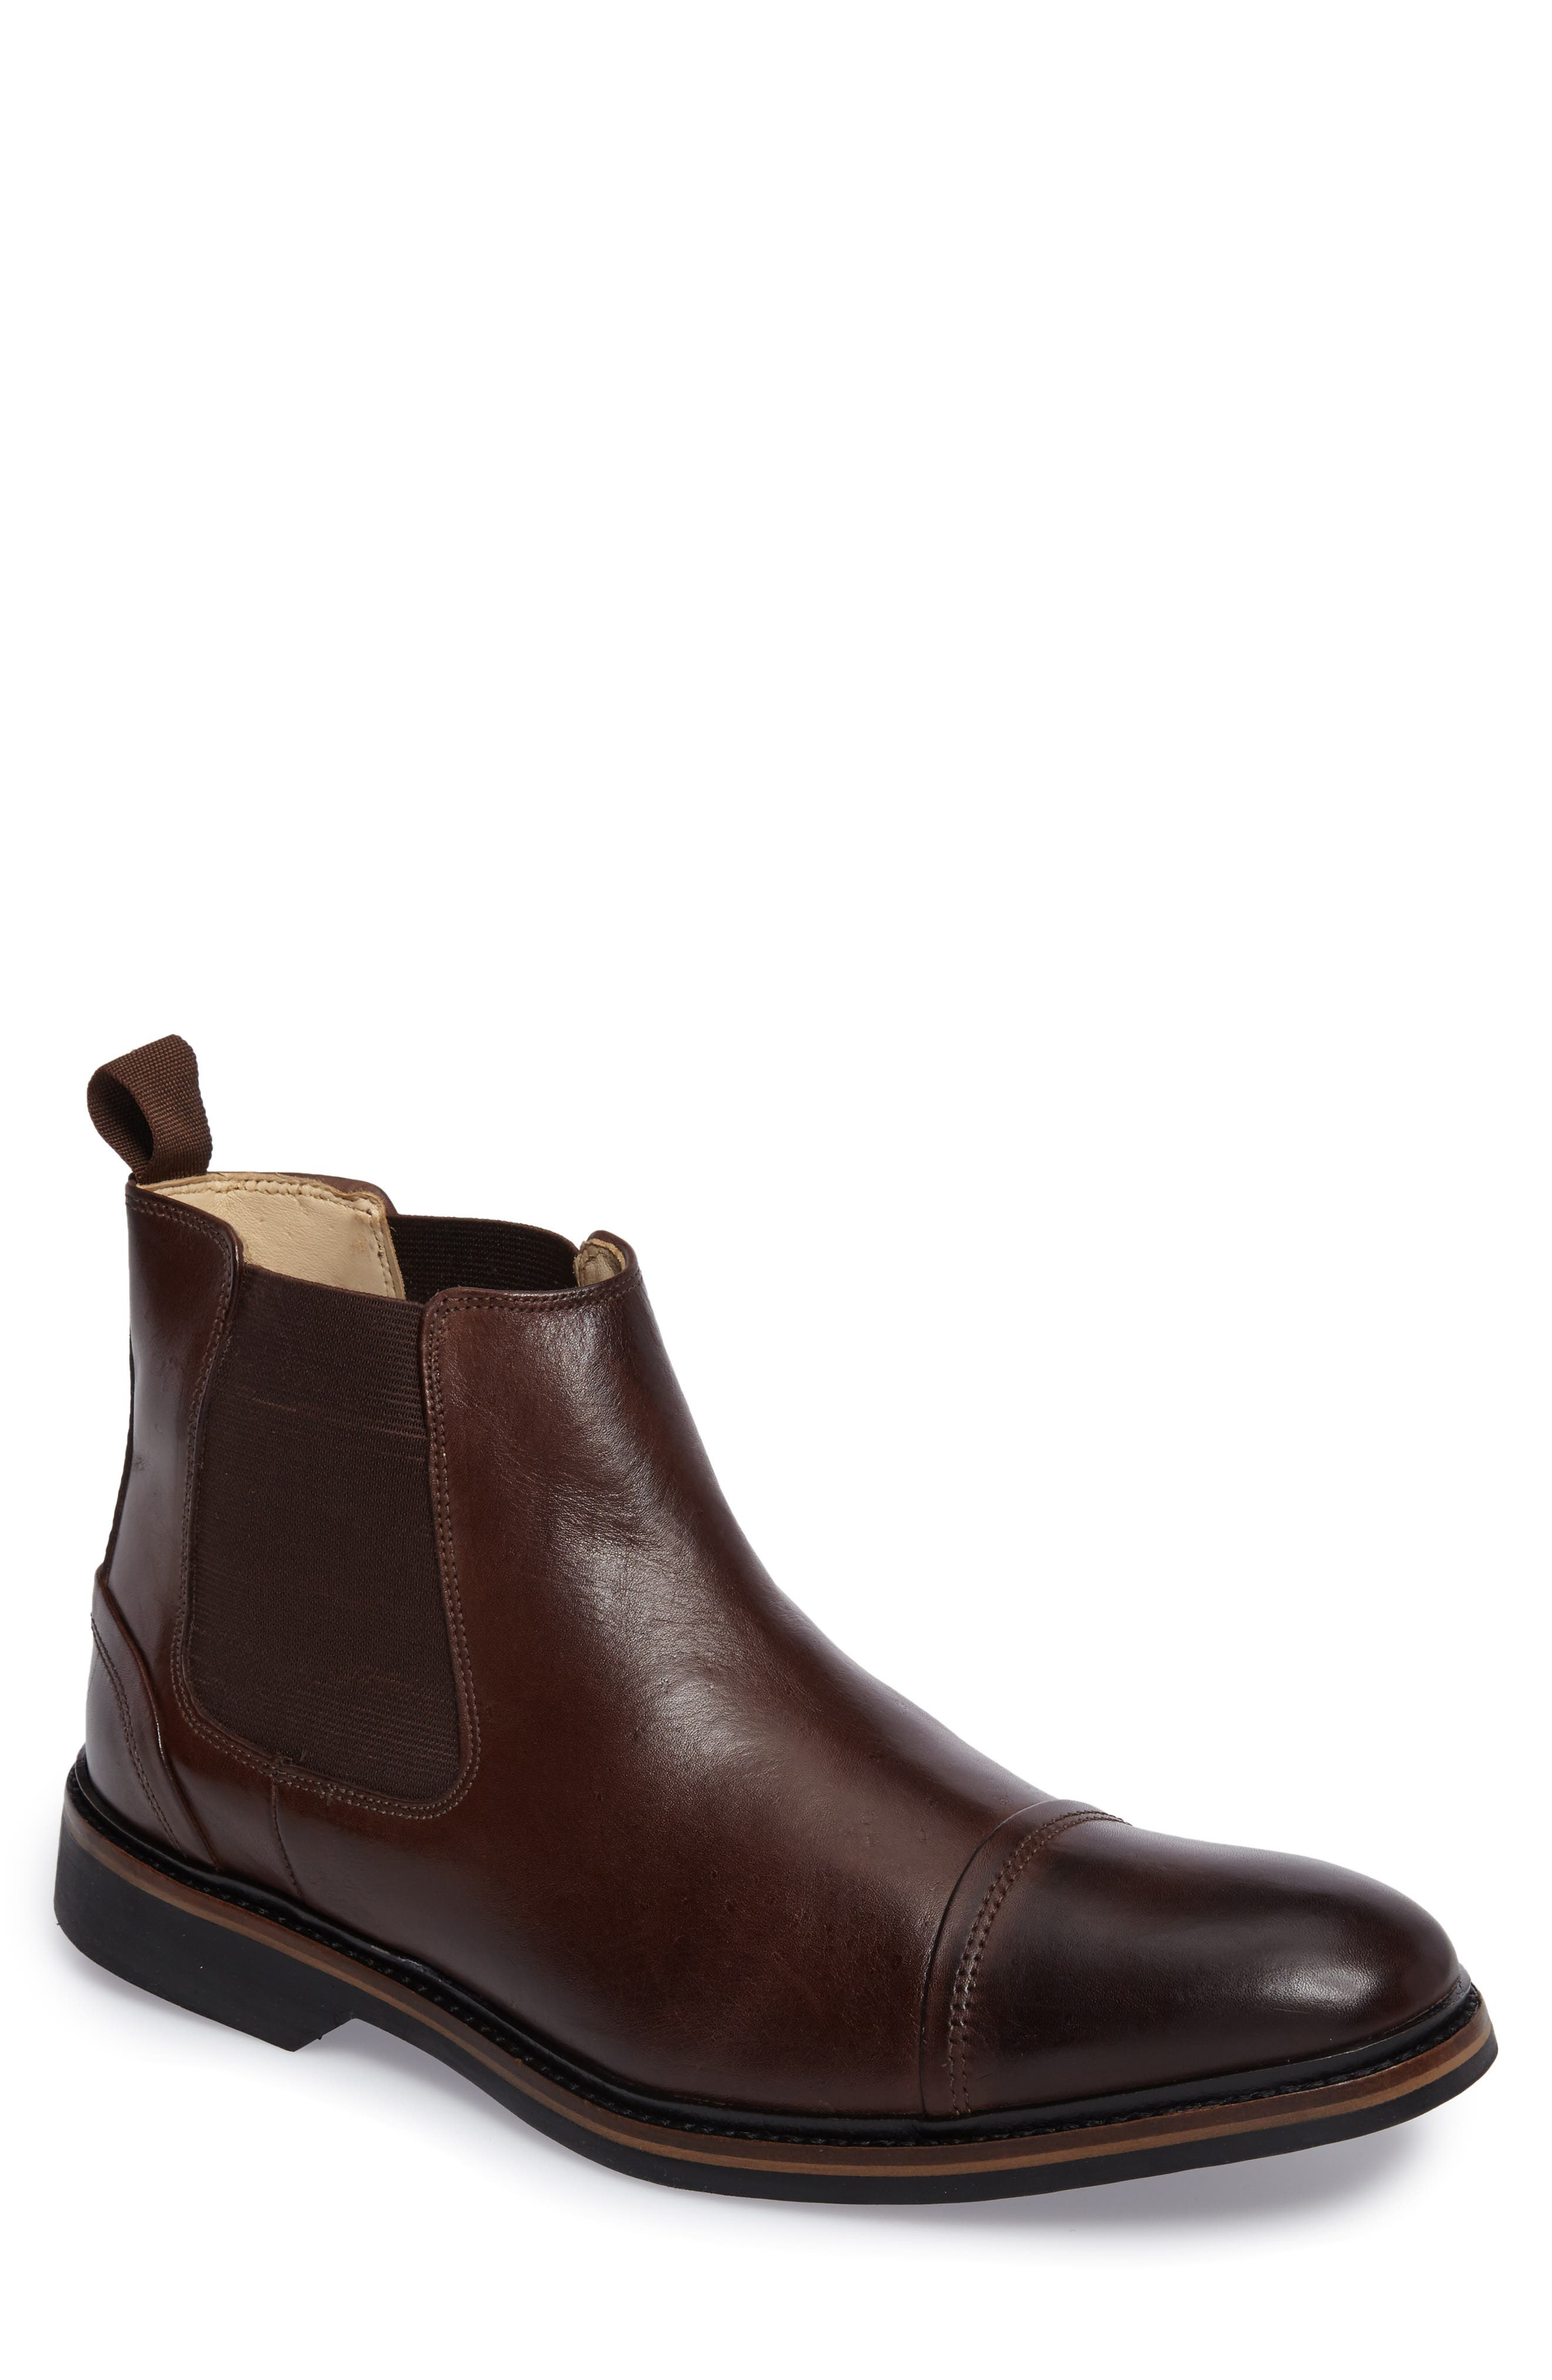 Floriano Chelsea Boot,                             Main thumbnail 1, color,                             200